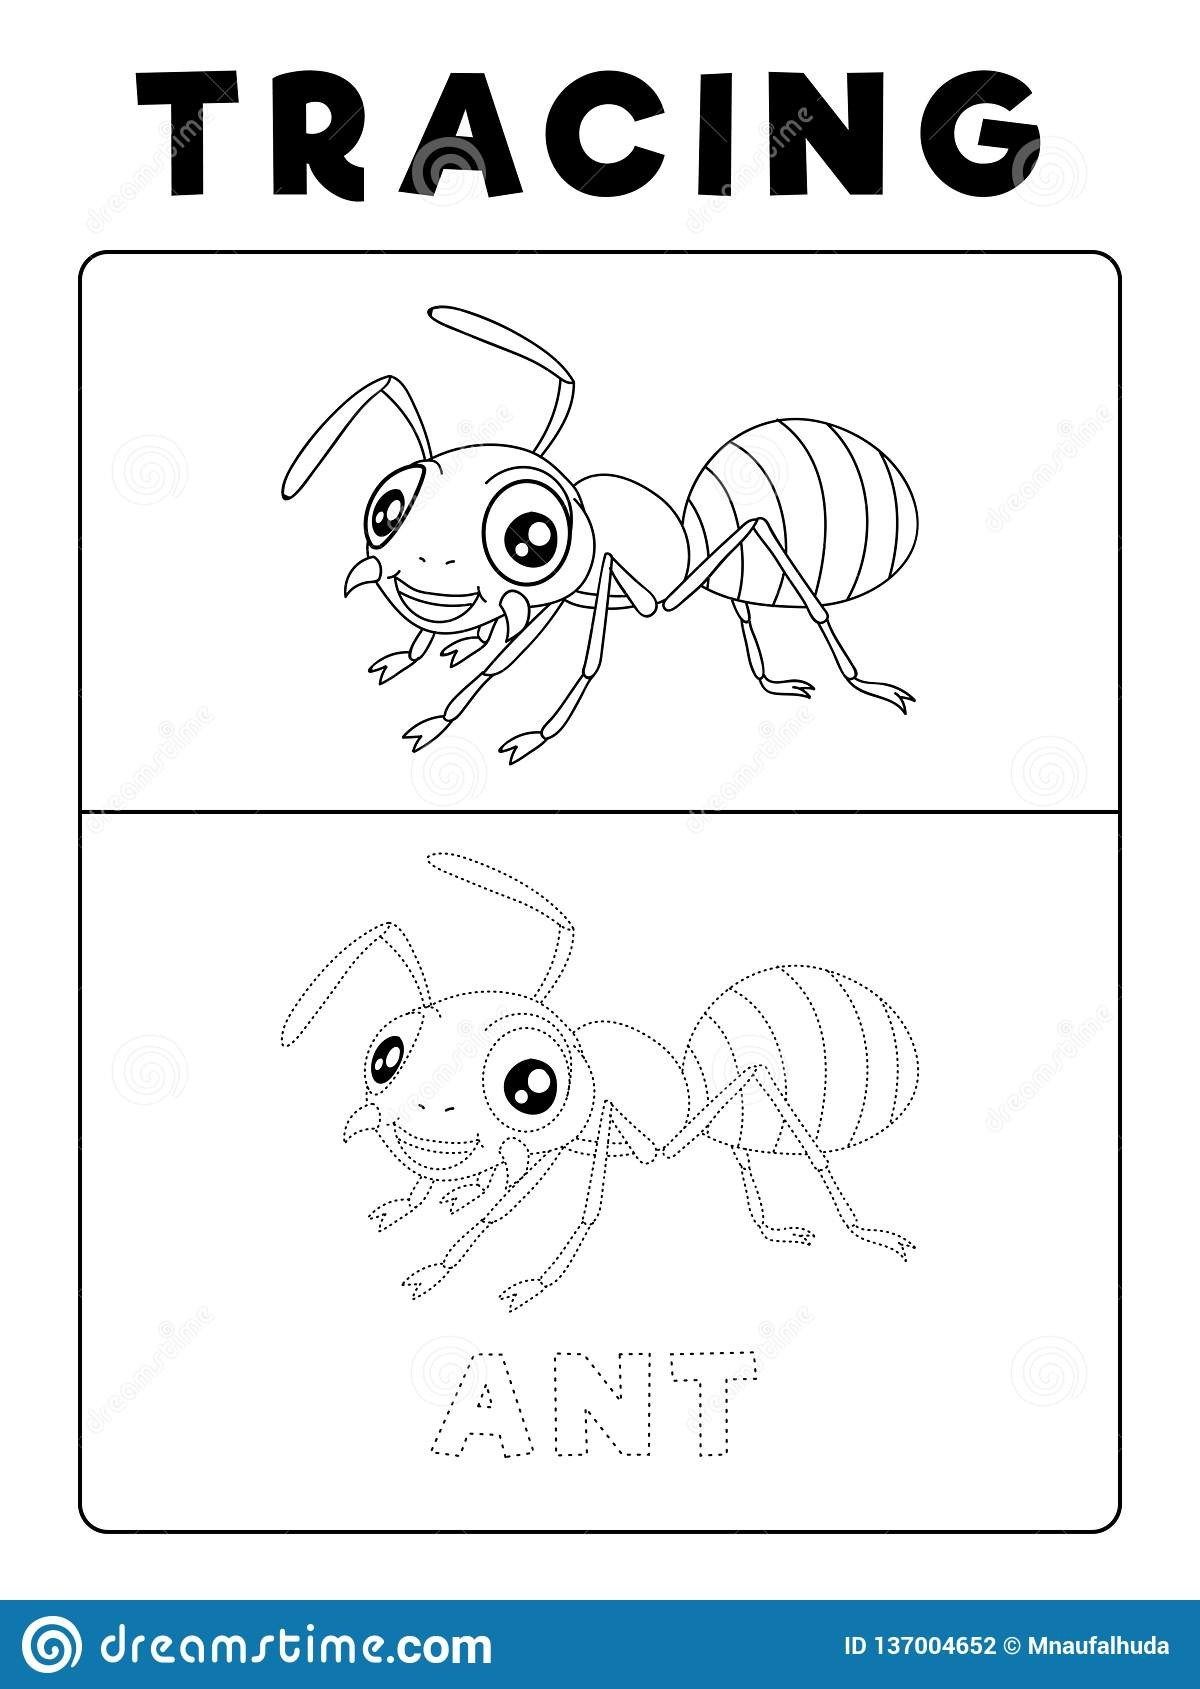 funny ant insect animal tracing book example preschool worksheet practicing fine motor skill vector cartoon illustration